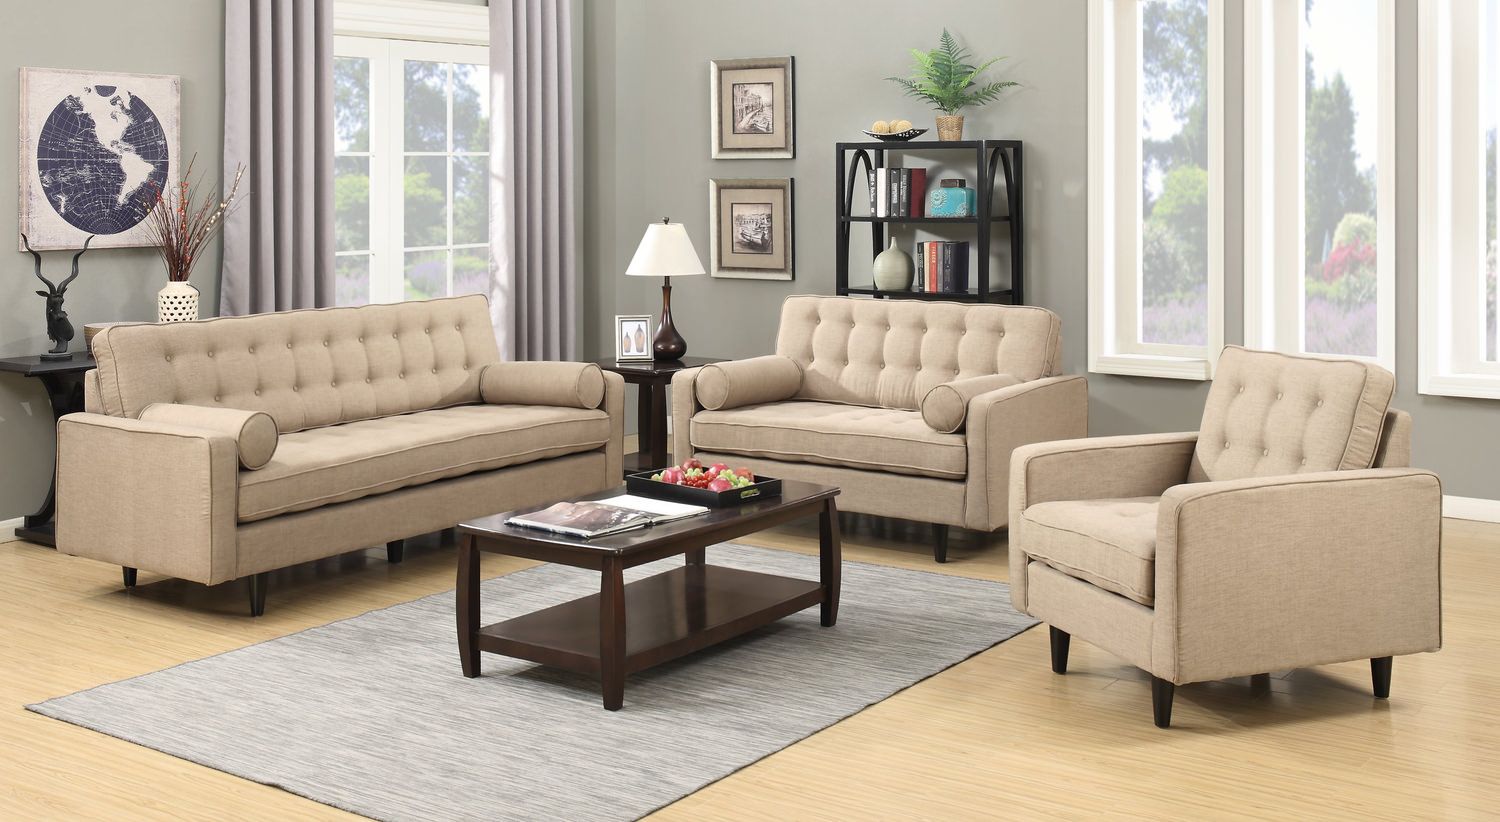 Mn sofa sectional sofas mn book of stefanie thesofa for Furniture 4 less outlet